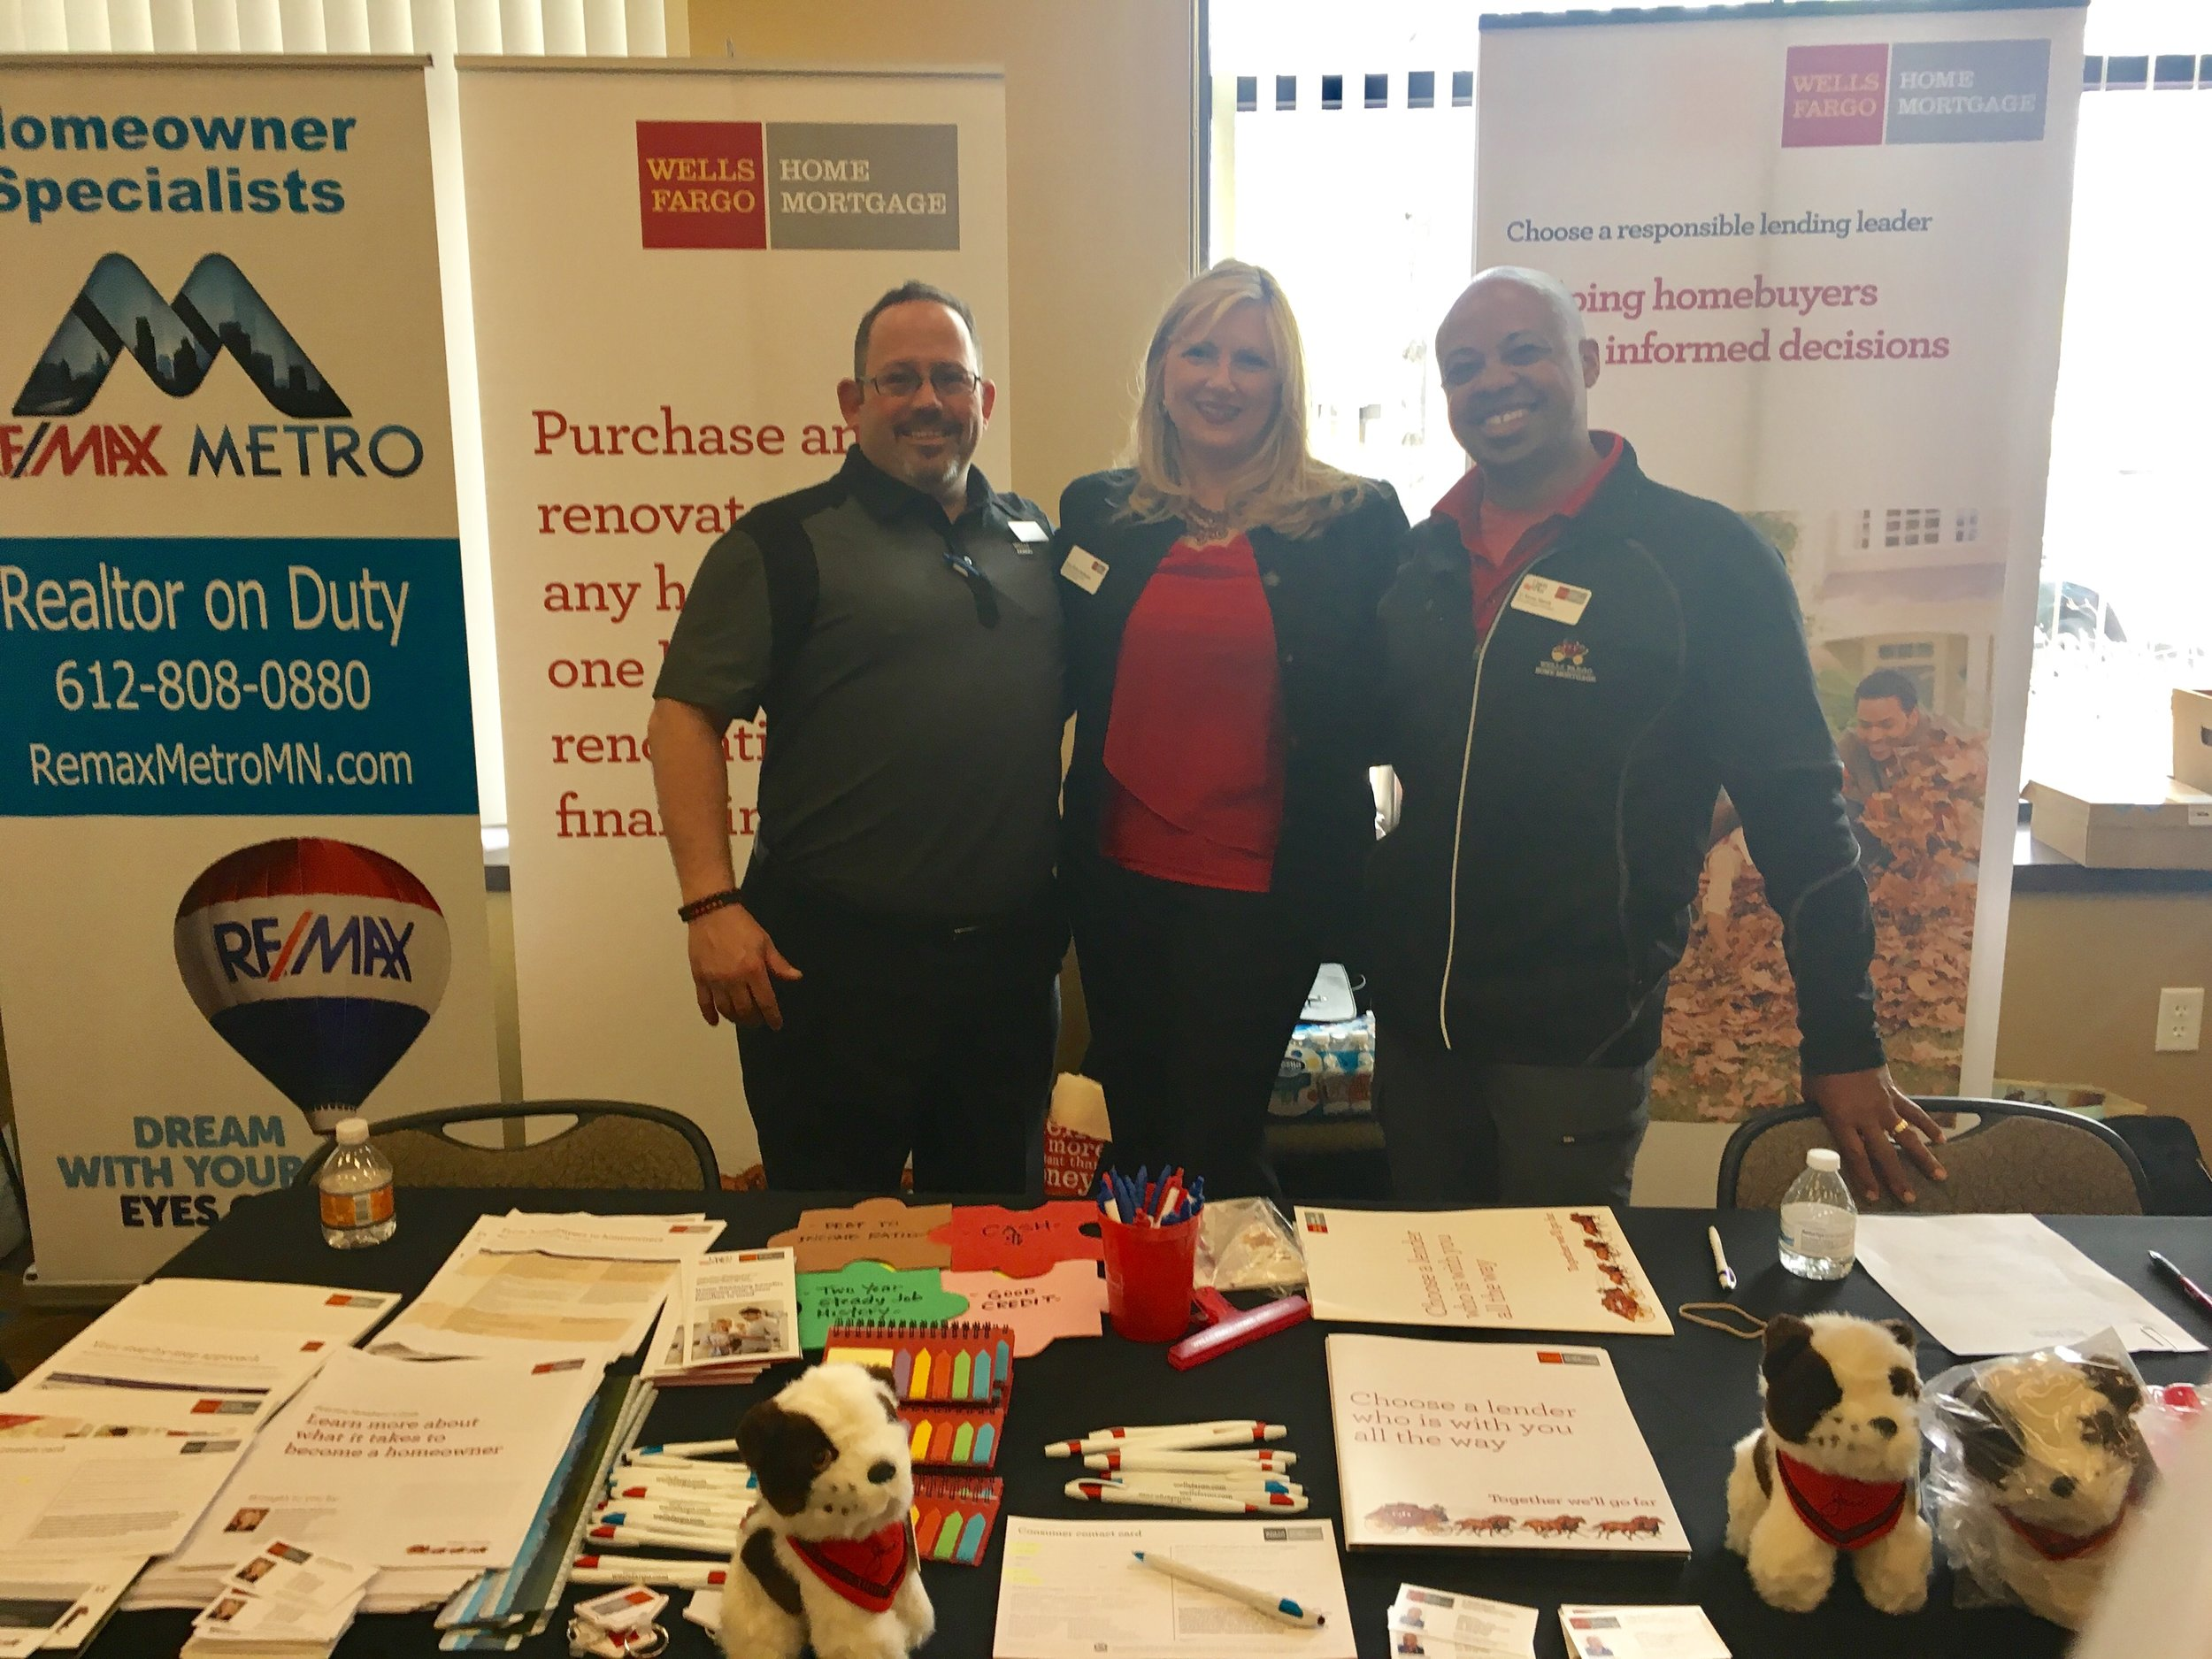 Friends from Wells Fargo Home Mortgage